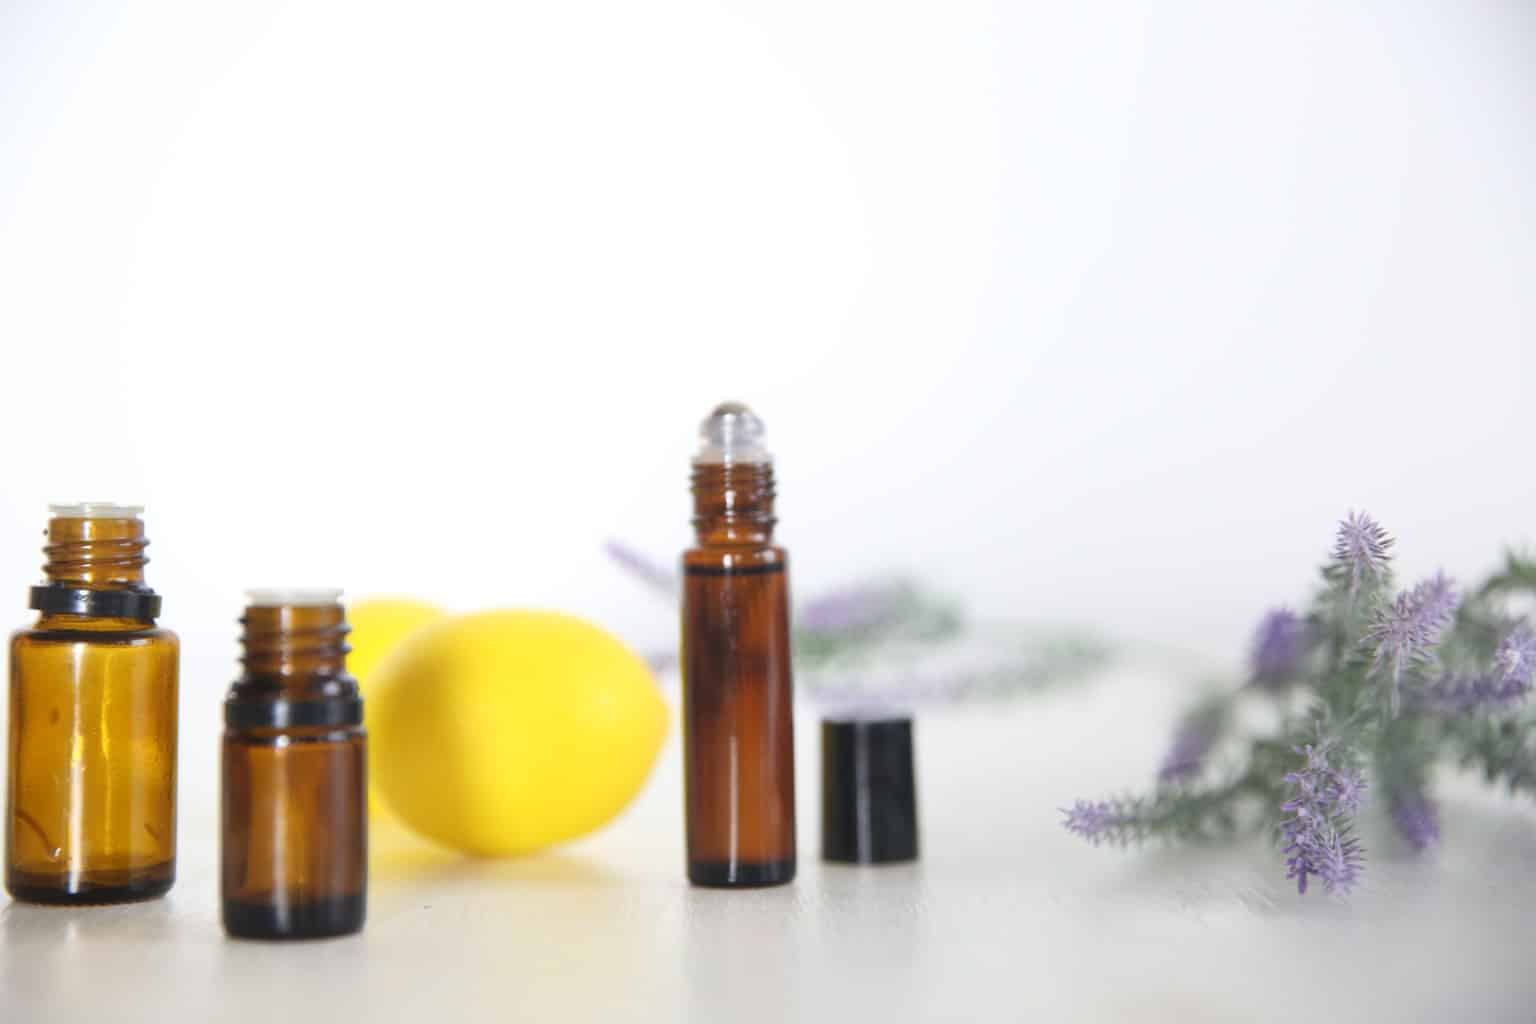 Natural remedy for seasonal threats, congestion, coughs, and stuffy nose.